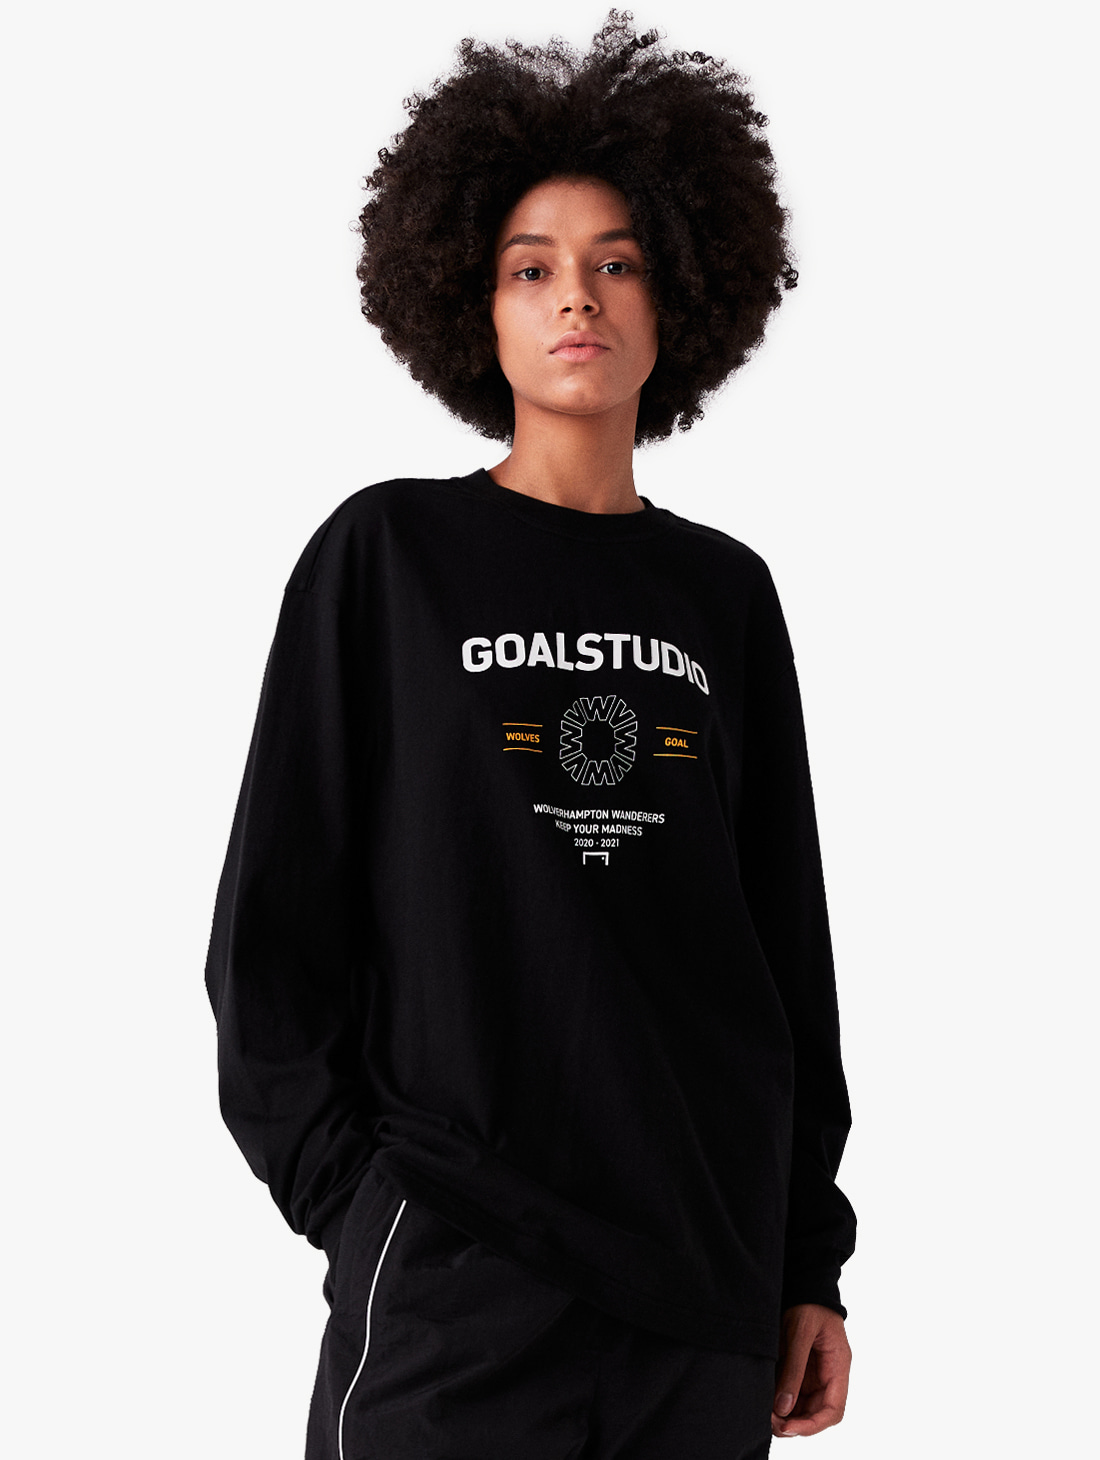 GOALSTUDIO (Sold Out) WWFC LONG SLEEVE SHIRT